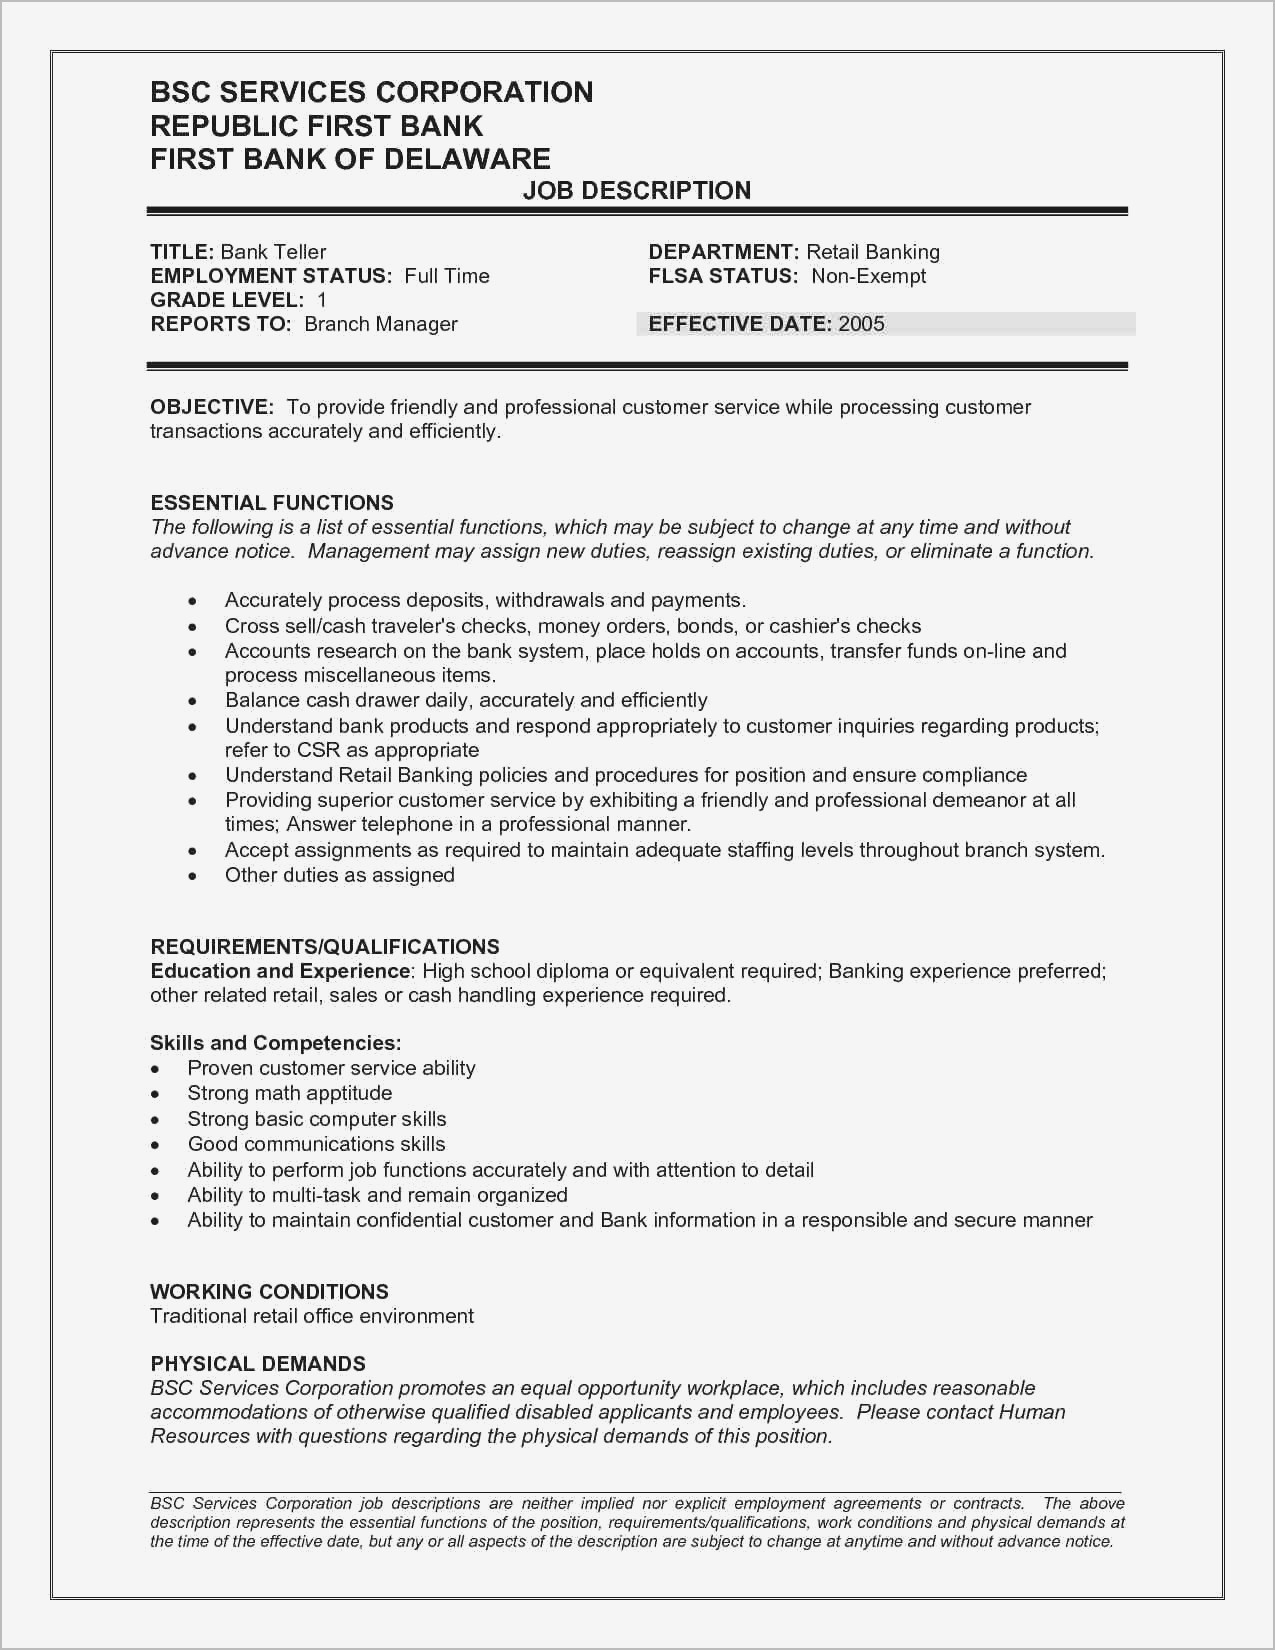 Functional Executive Resume - Basic Resume Examples for Retail Jobs Resume Resume Examples